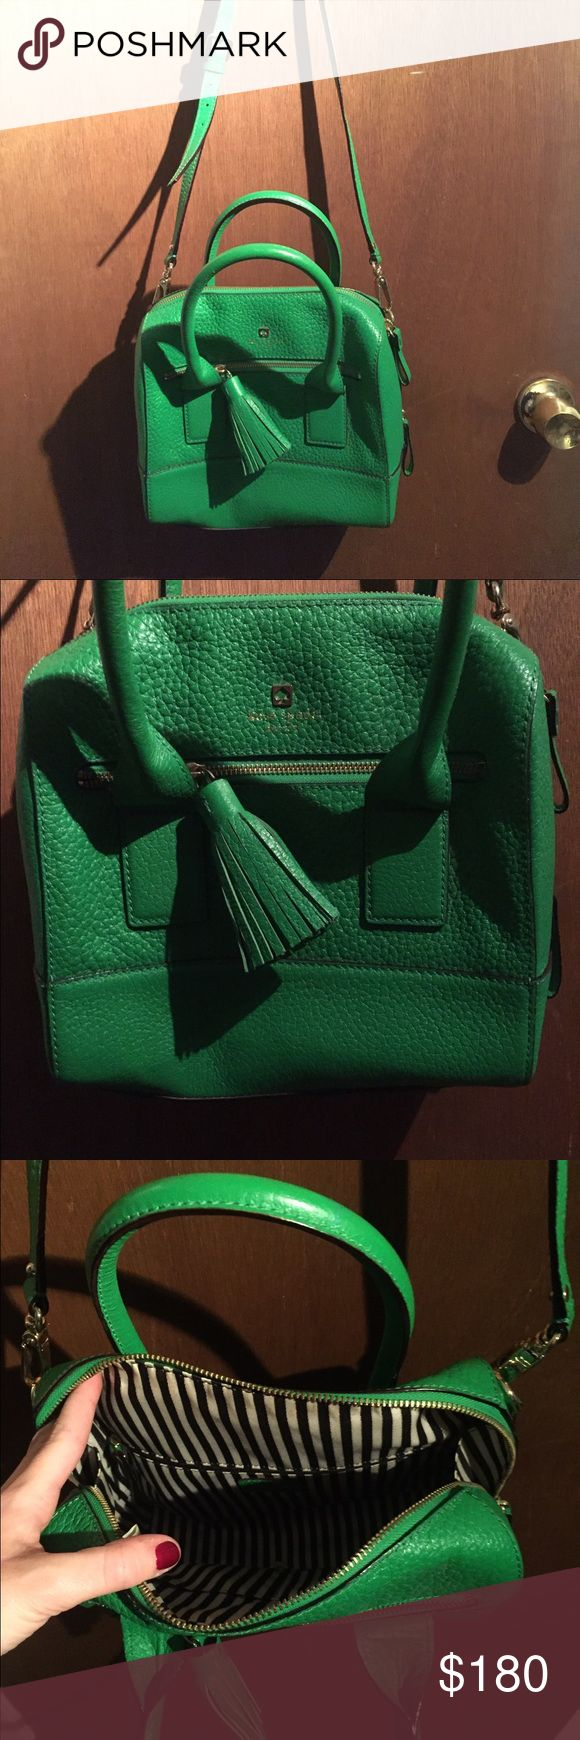 Kate Spade green cross body medium sized bag A beautiful Kate Spade green purse. Has a long strap for shoulder or a great double handle. Inside is black and white striped. In amazing condition. kate spade Bags Shoulder Bags